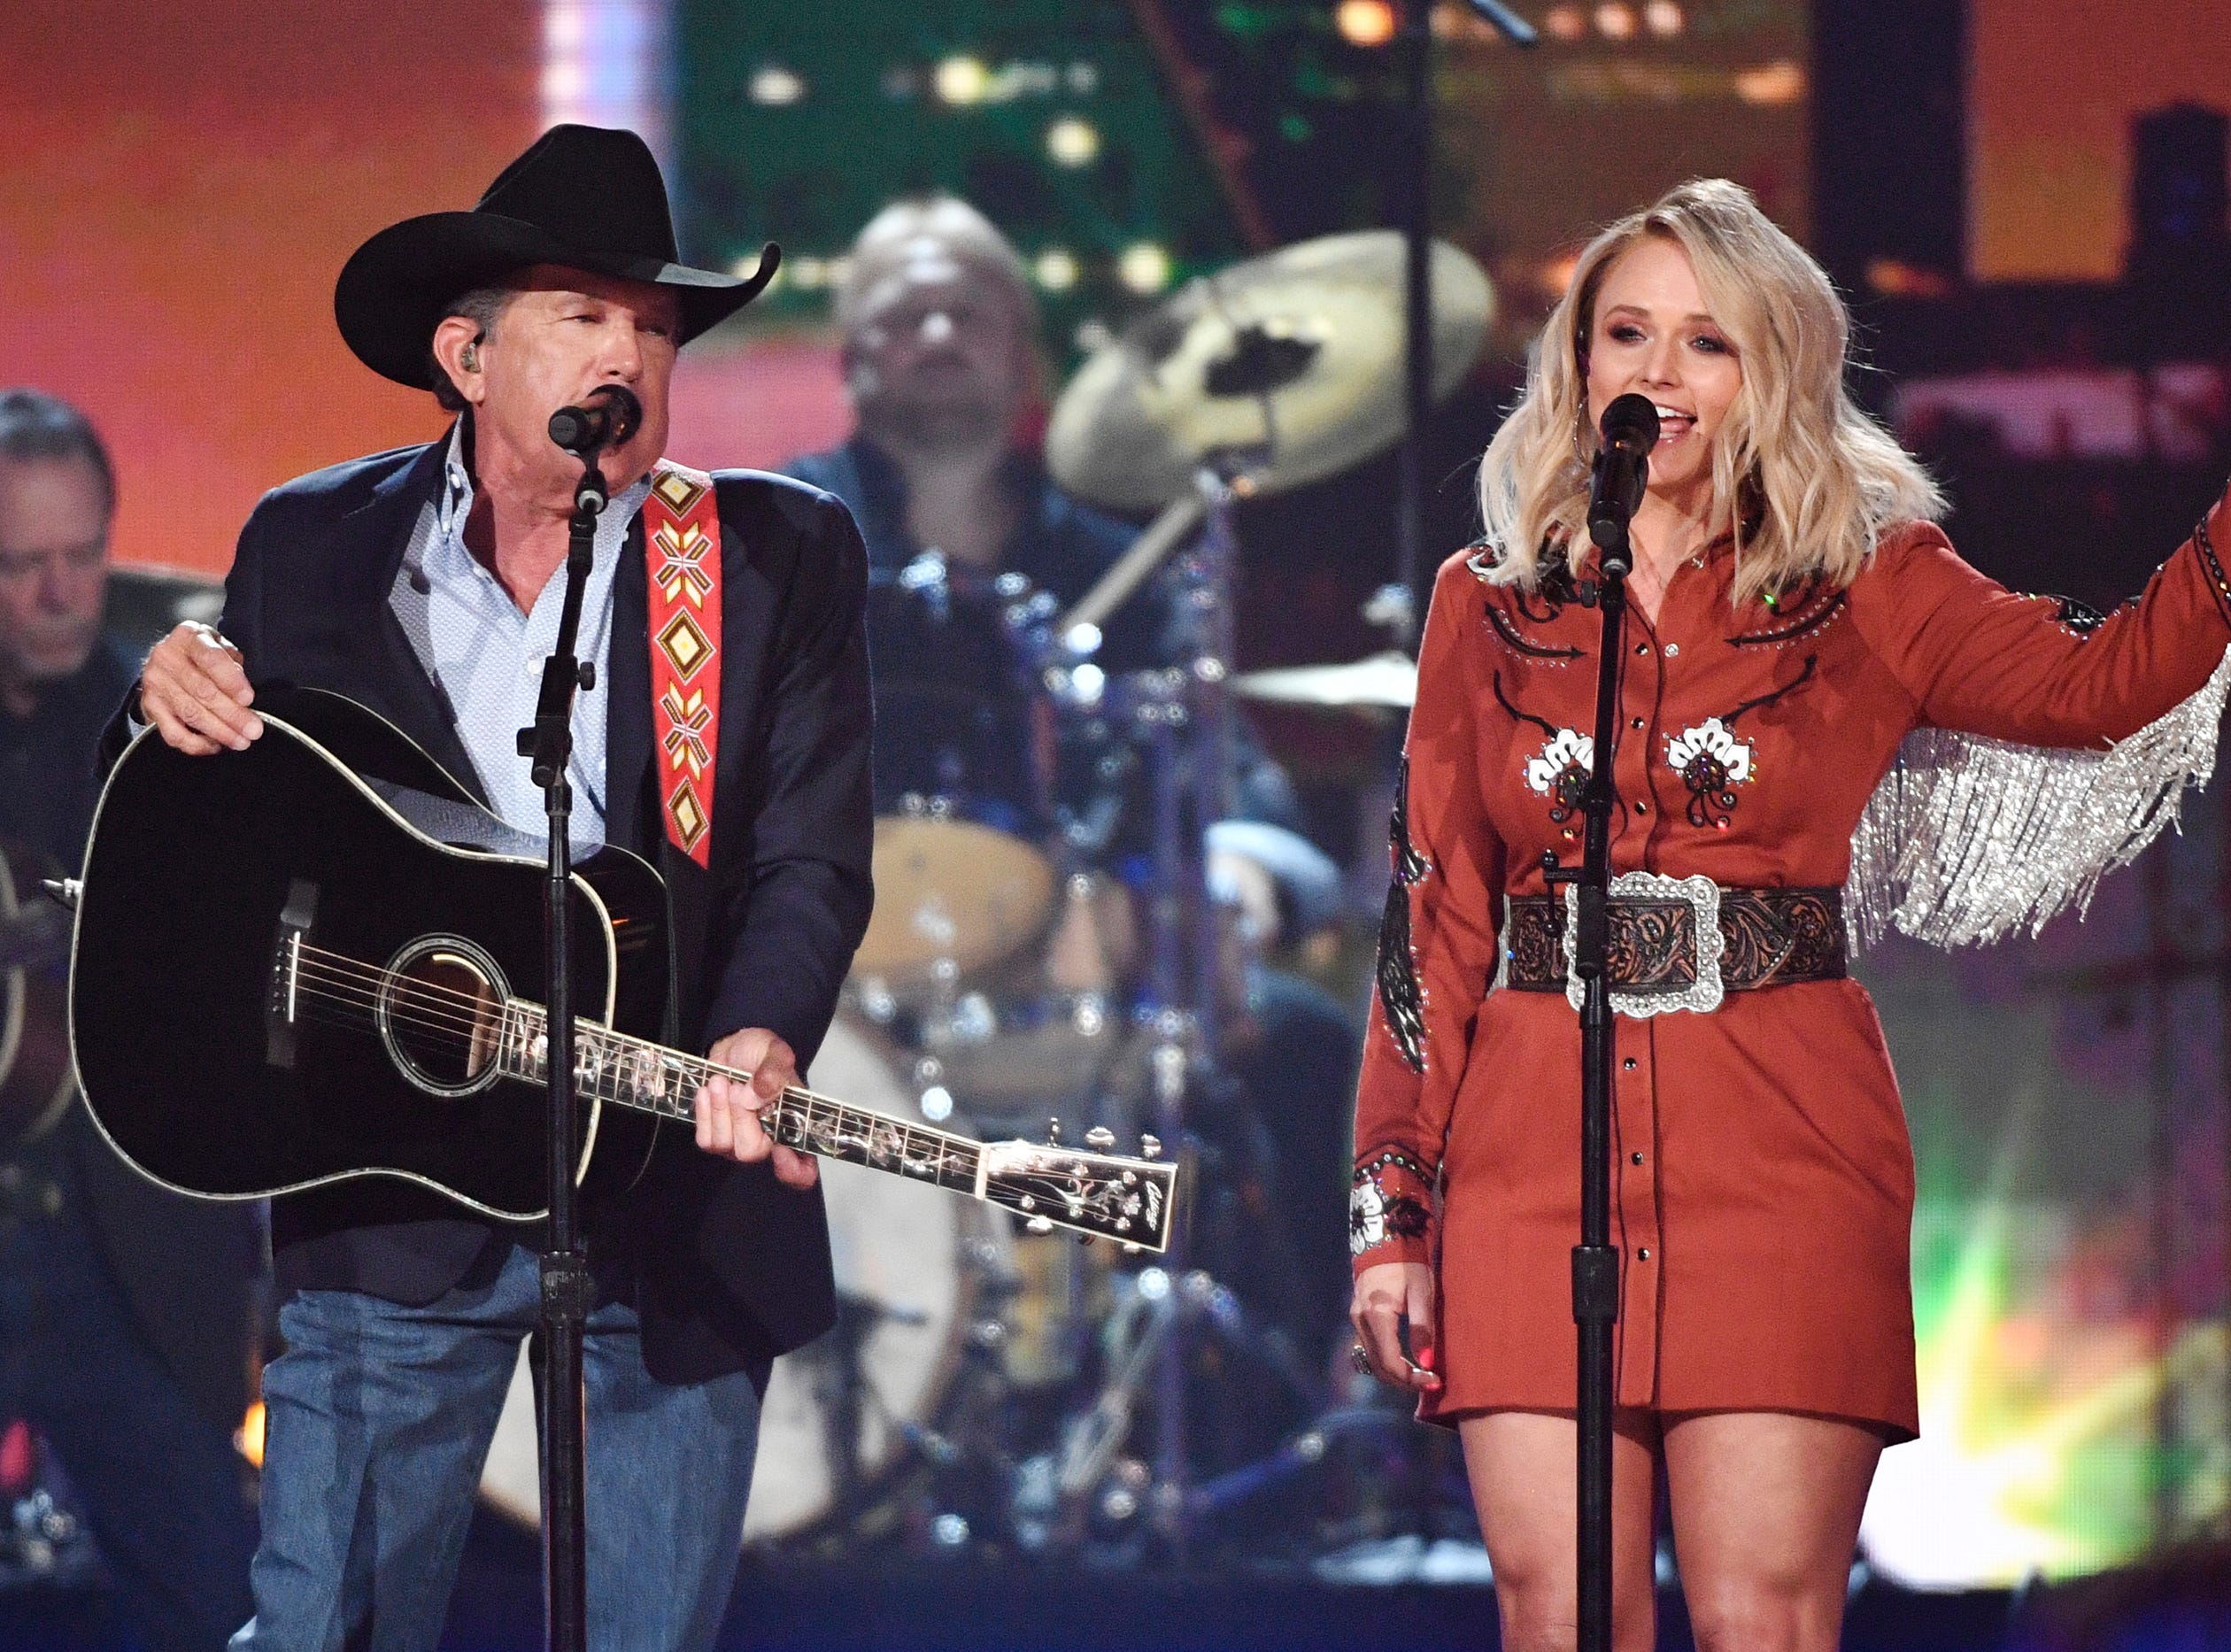 George Strait, left, and Miranda Lambert, perform during the 54TH Academy of Country Music Awards Sunday, April 7, 2019, in Las Vegas, Nev.